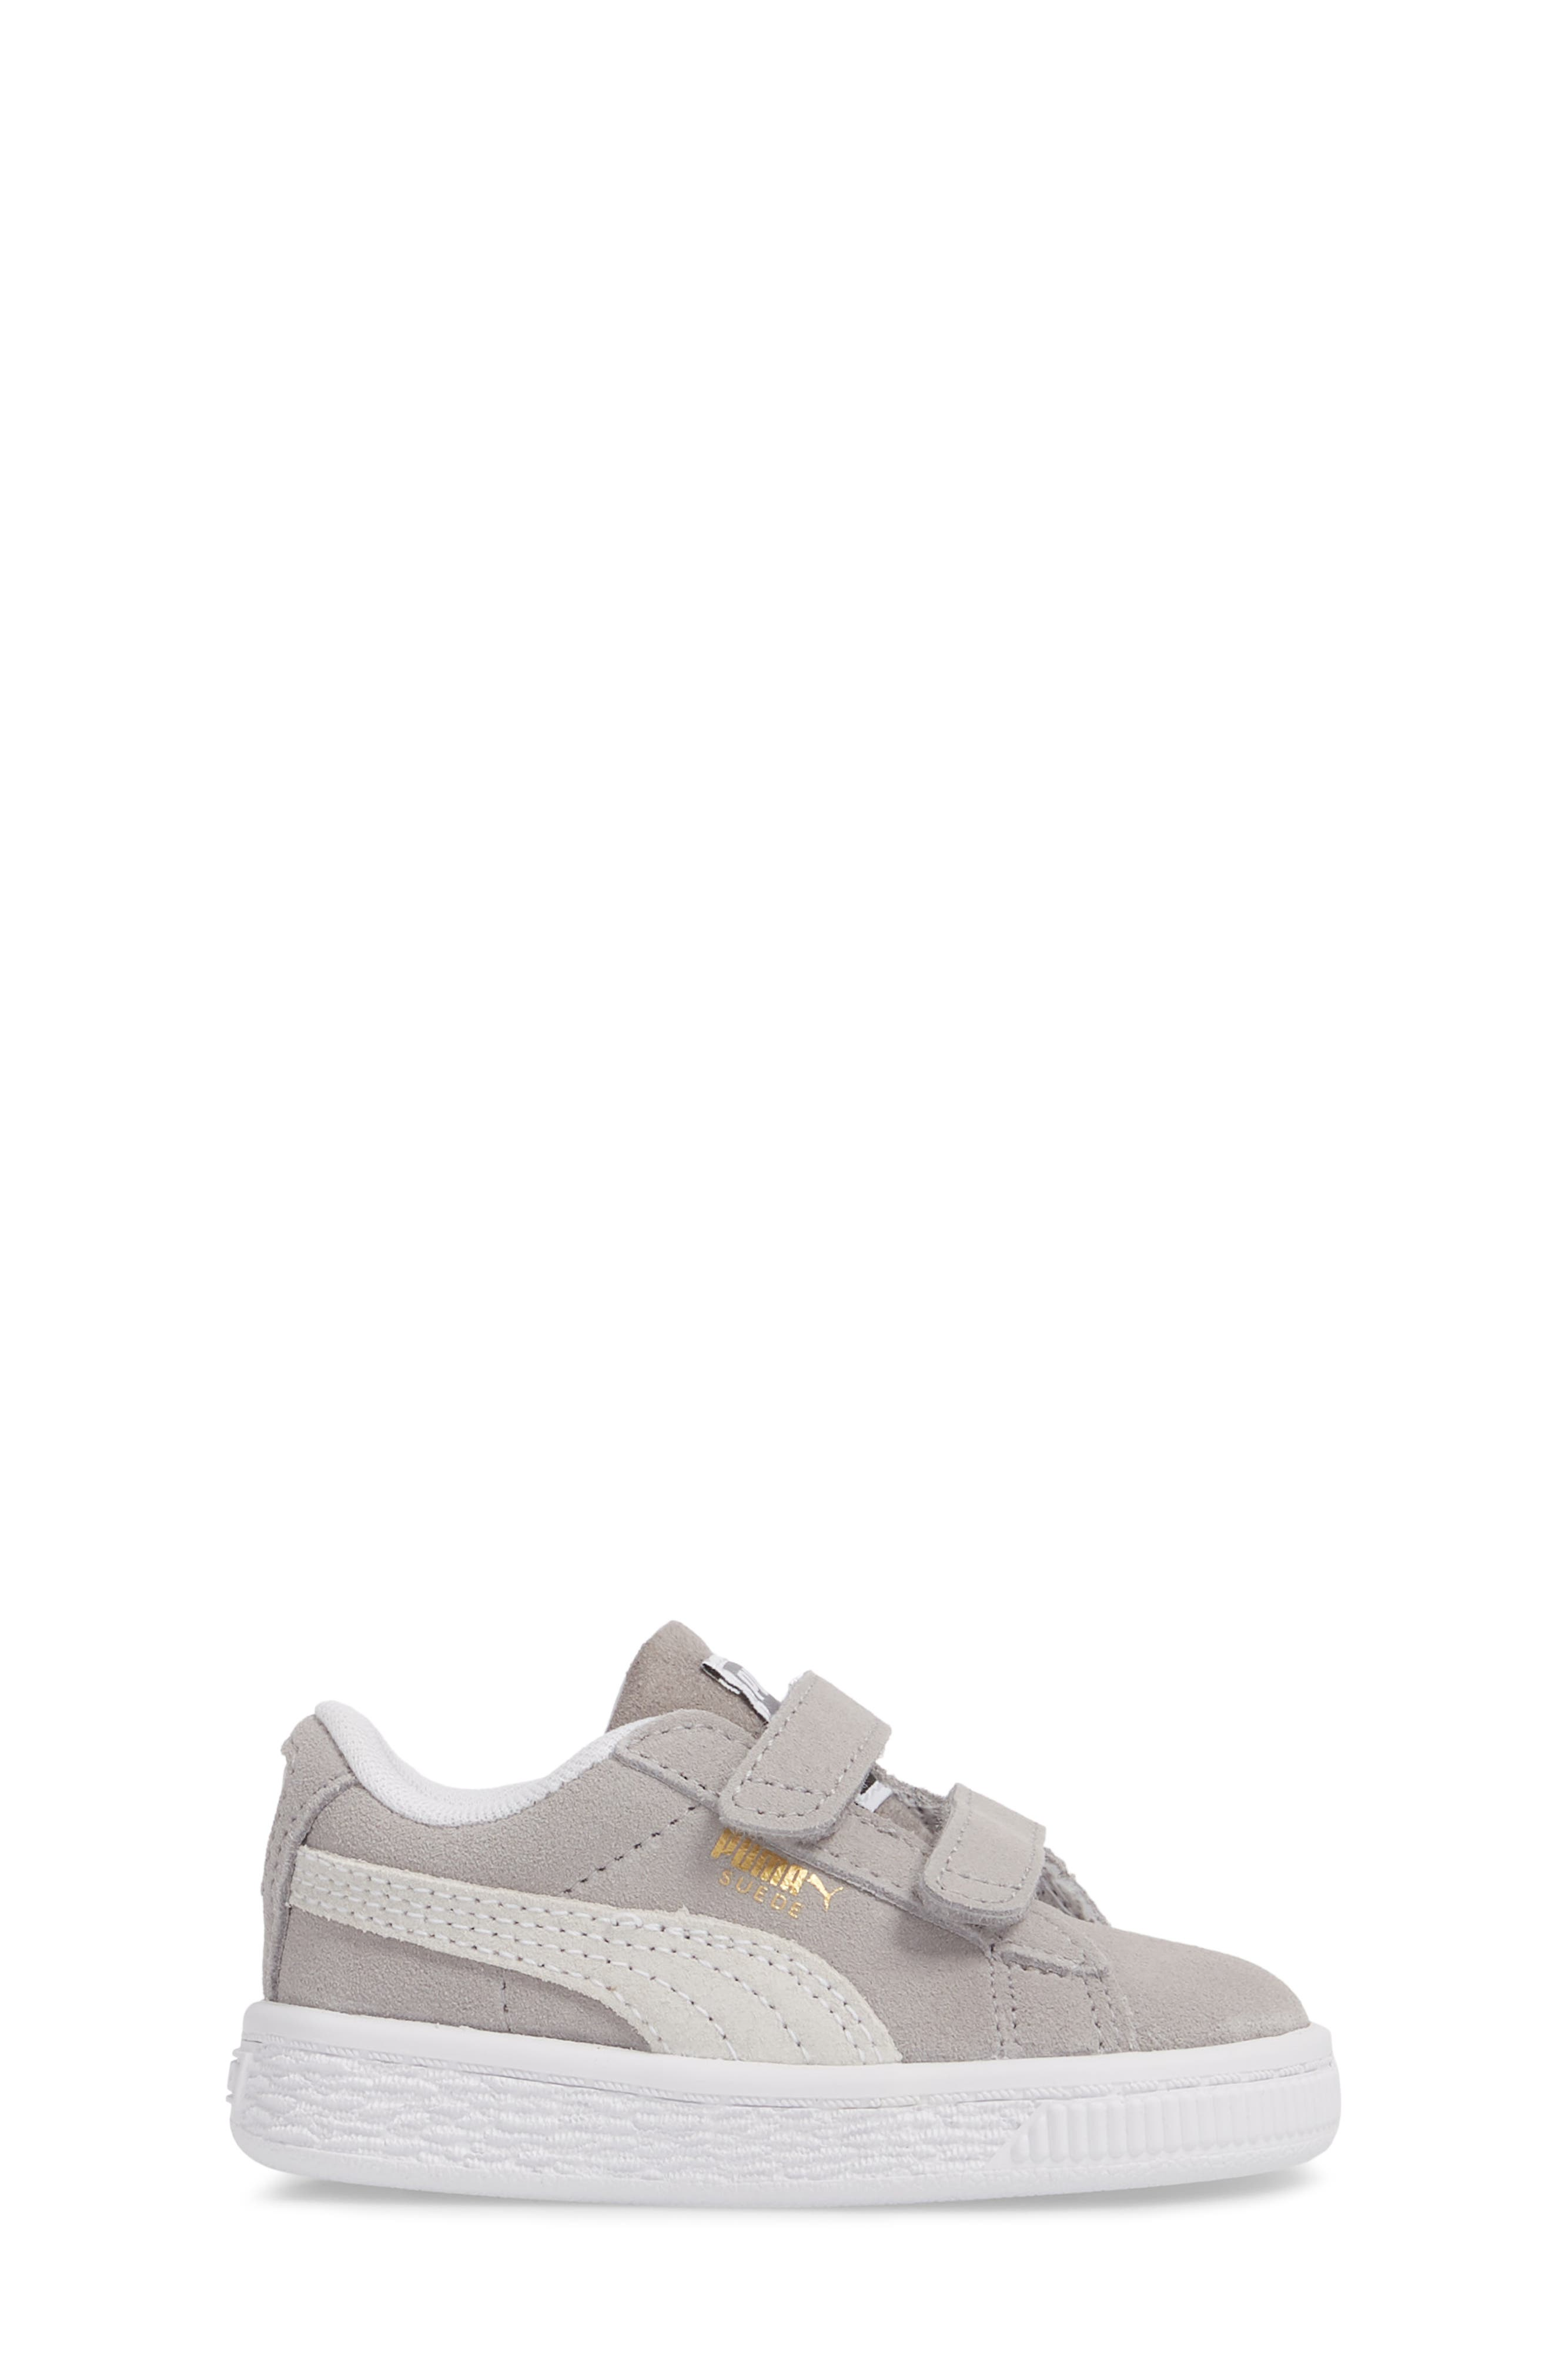 Suede Classic Sneaker,                             Alternate thumbnail 3, color,                             Ash/ Puma White